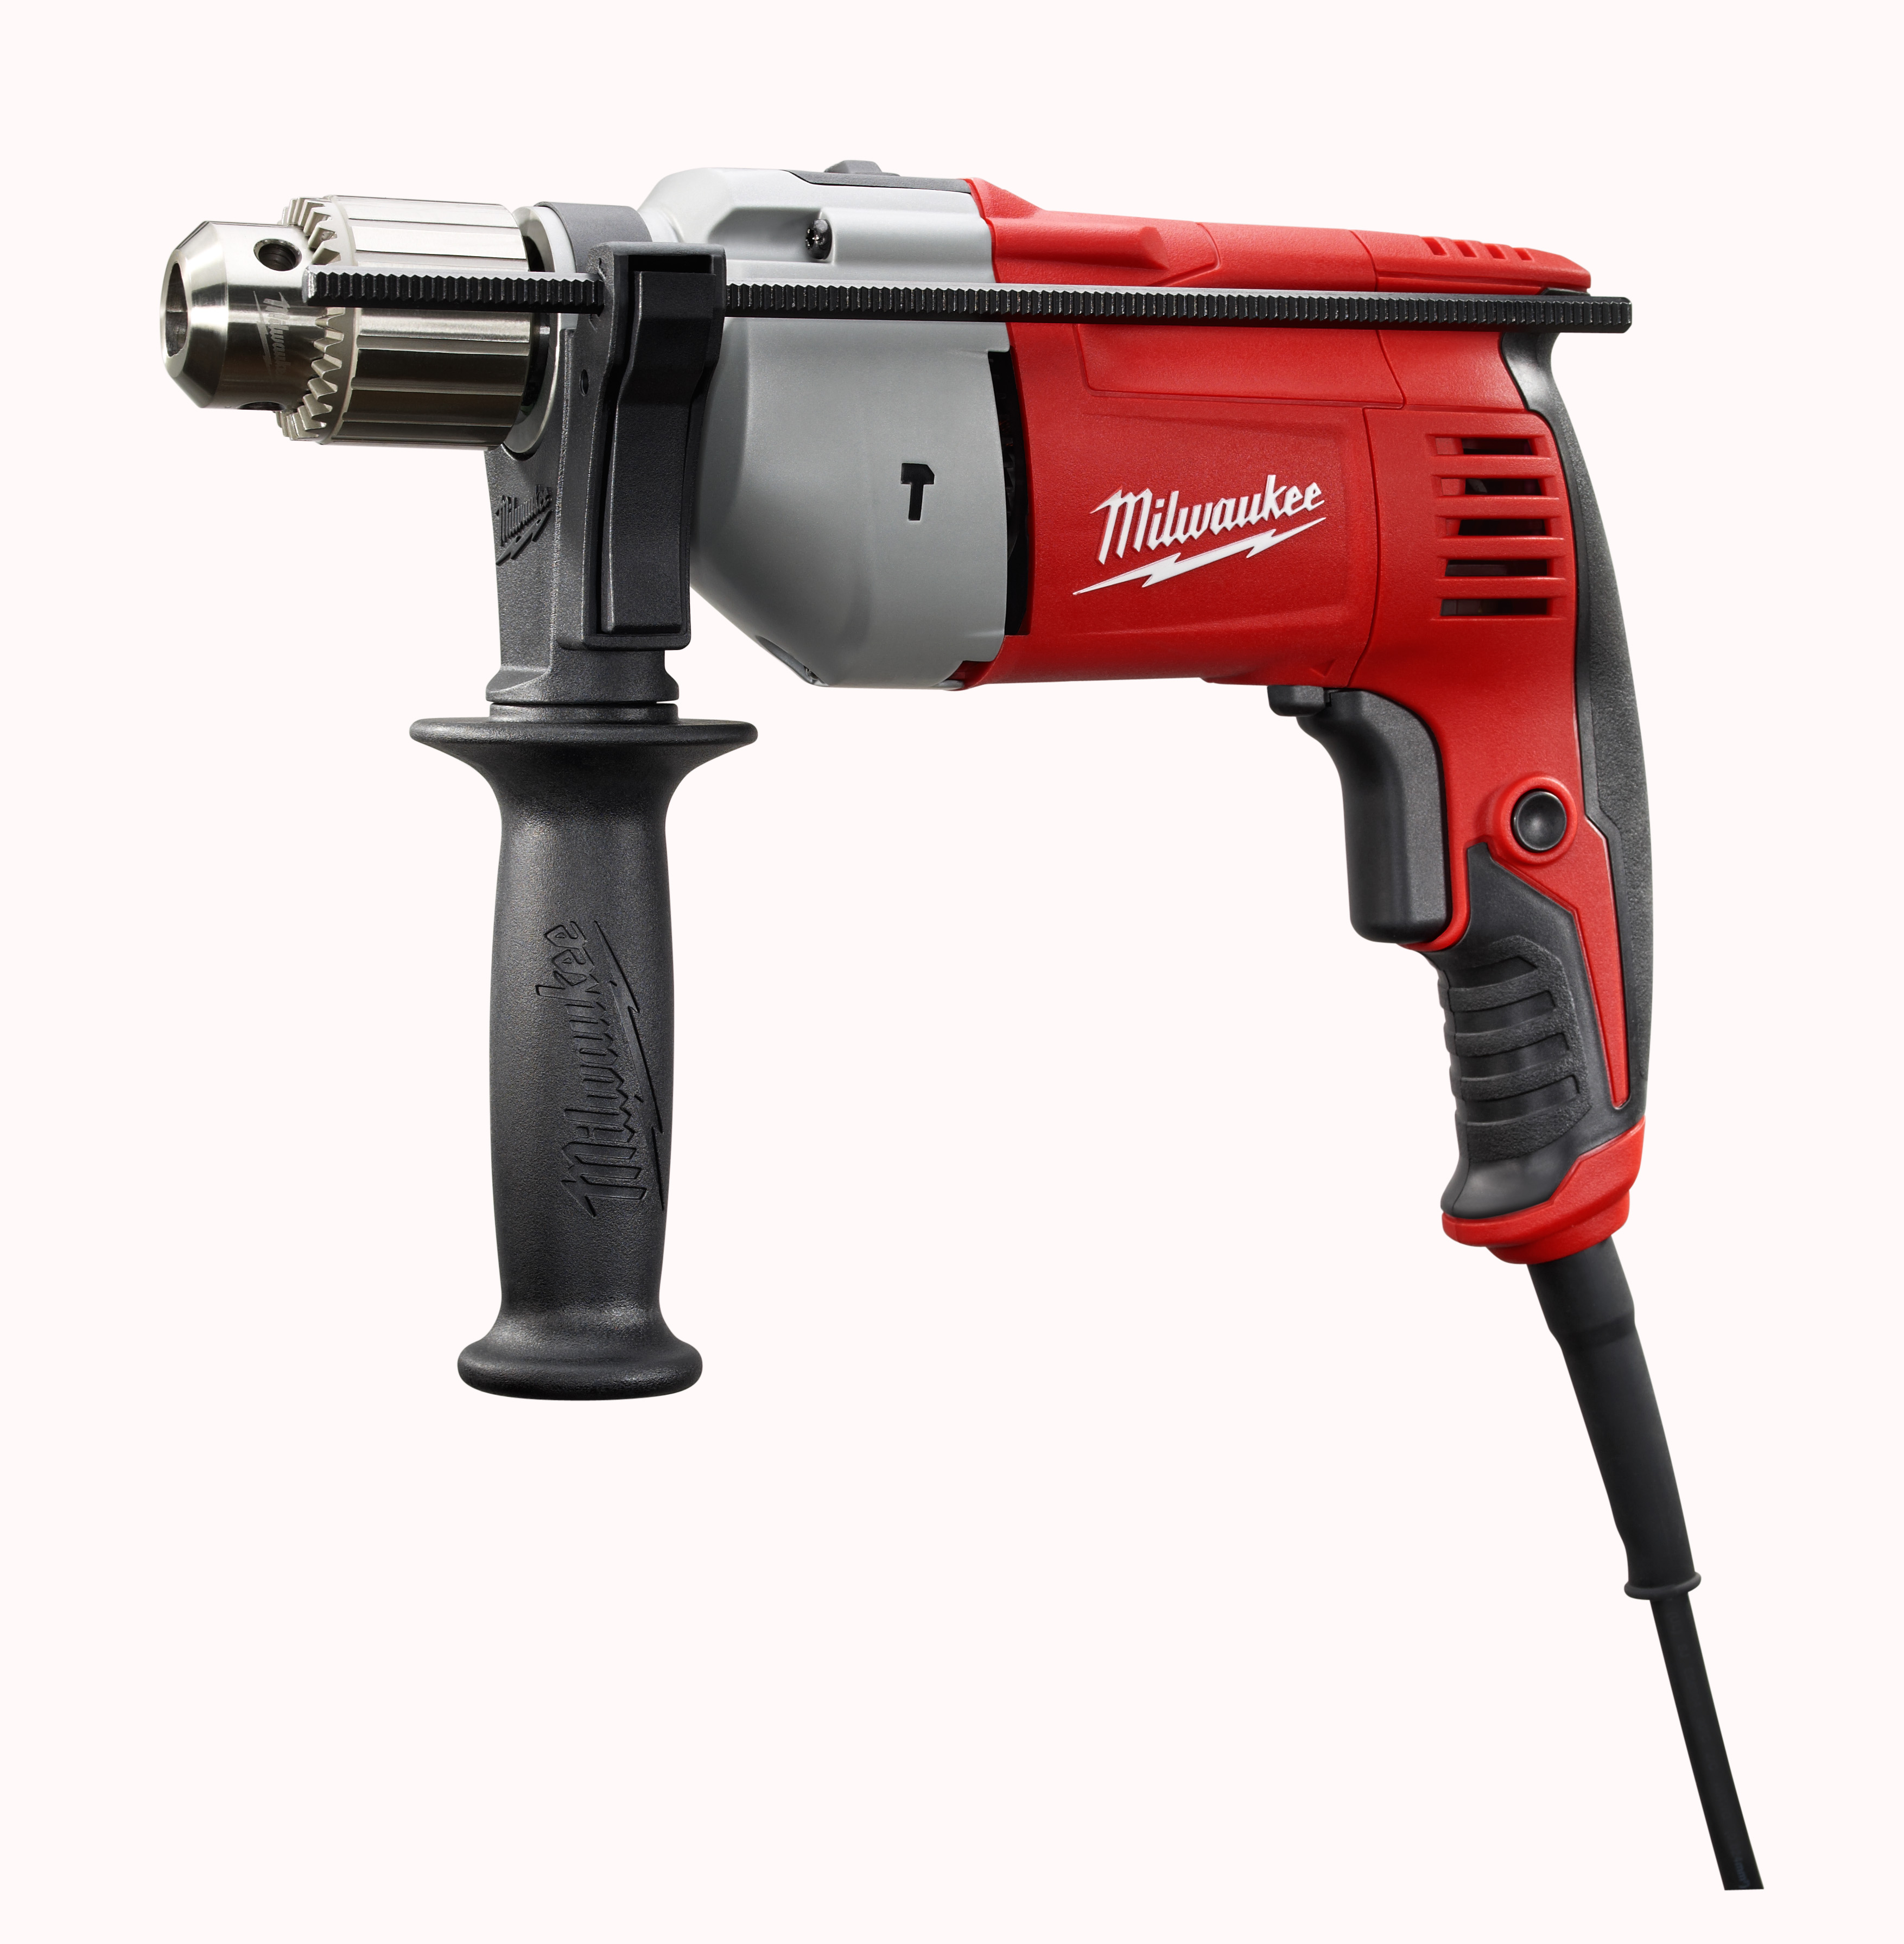 Milwaukee® 5376-20 Compact Corded Hammer Drill, 1/2 in Keyed Chuck, 120 VAC, 11-1/2 in OAL